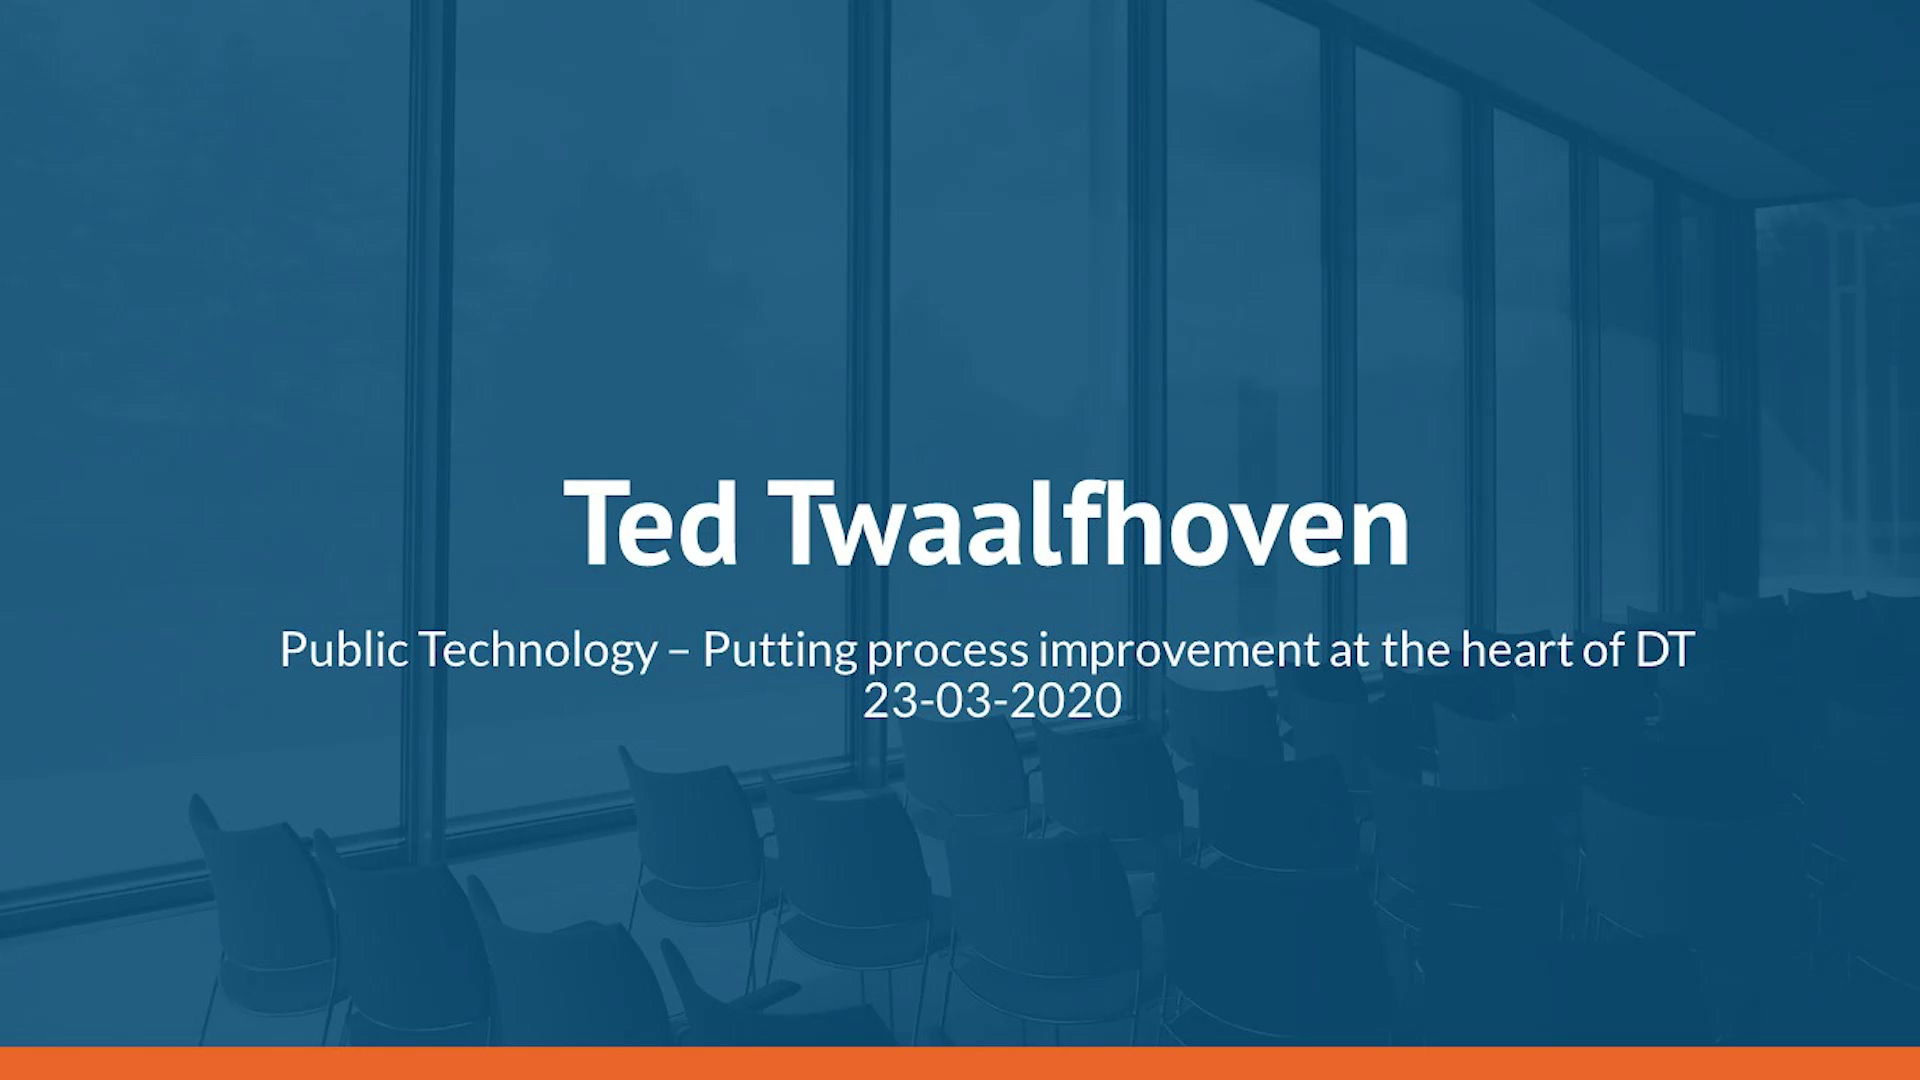 Ted Twaalfhoven P T